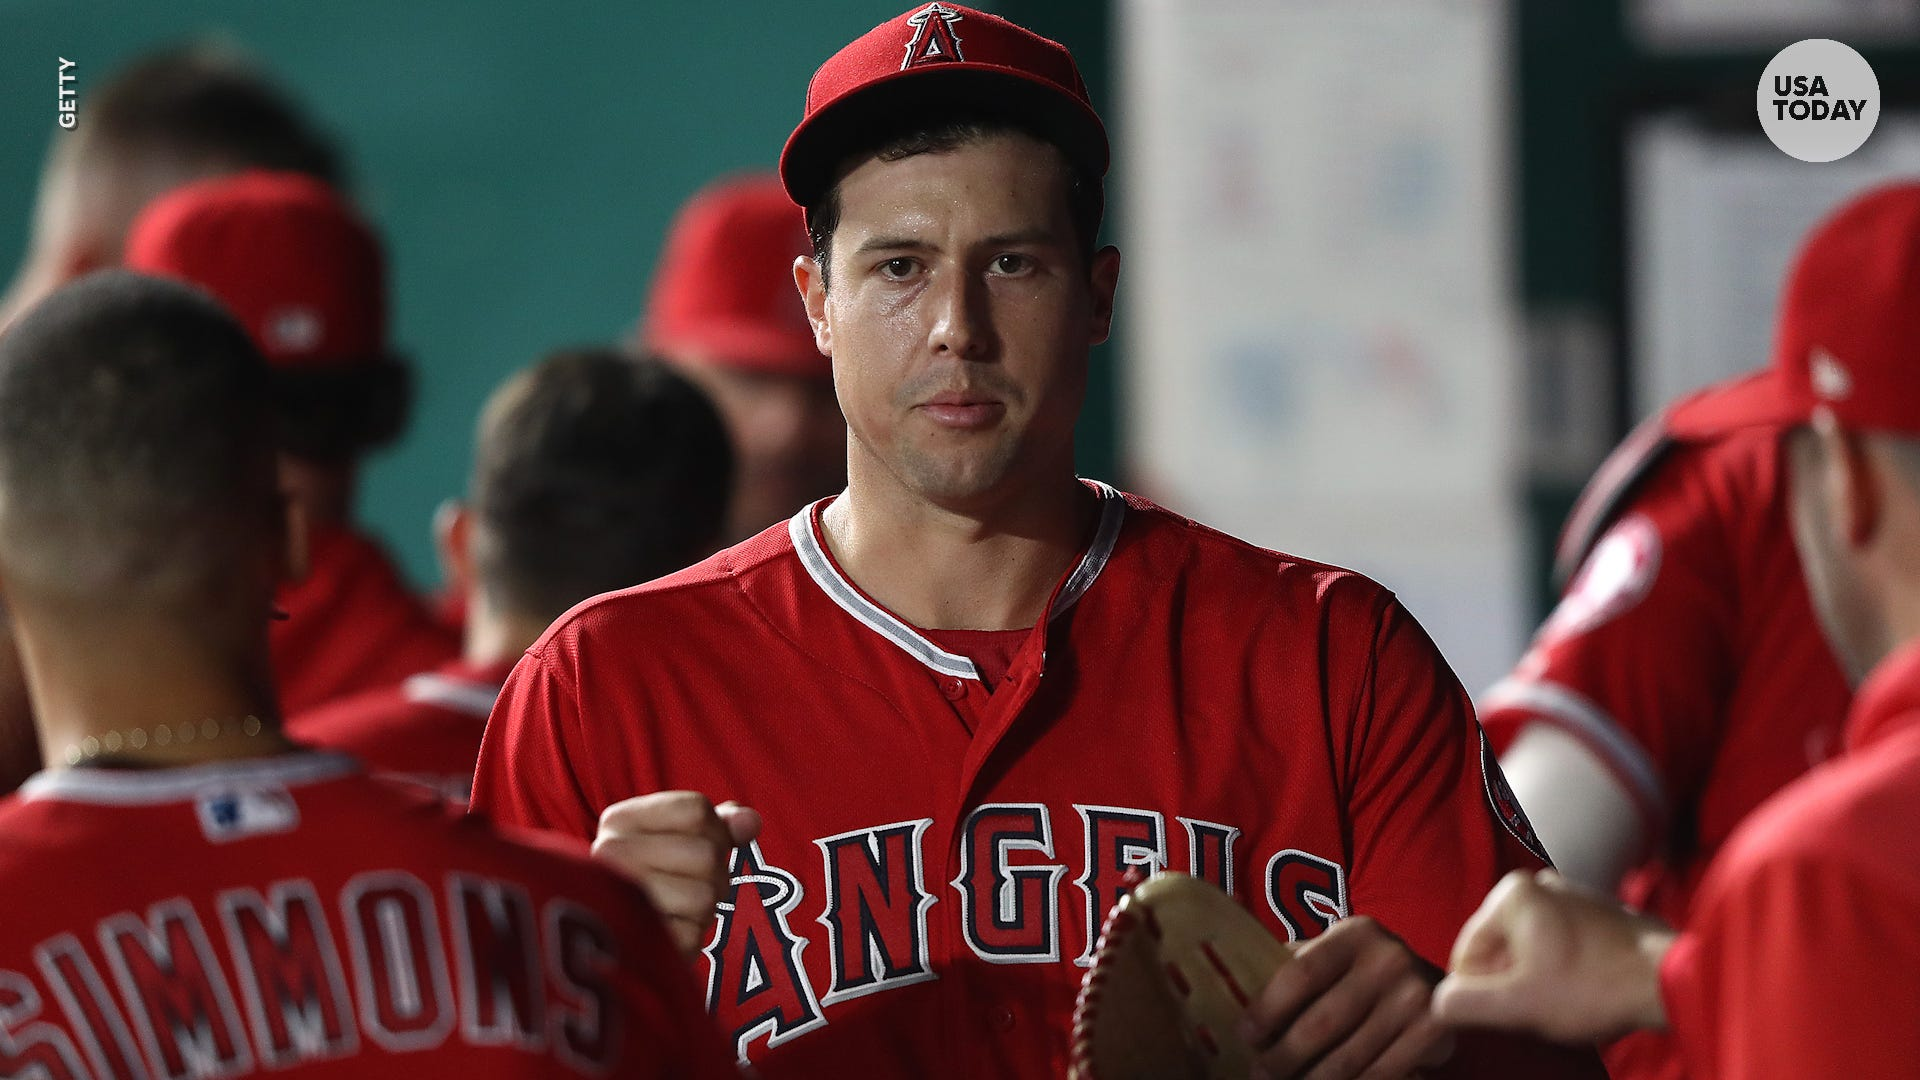 Toxicology report: Tyler Skaggs had fentanyl, oxycodone, alcohol in his  system when he died